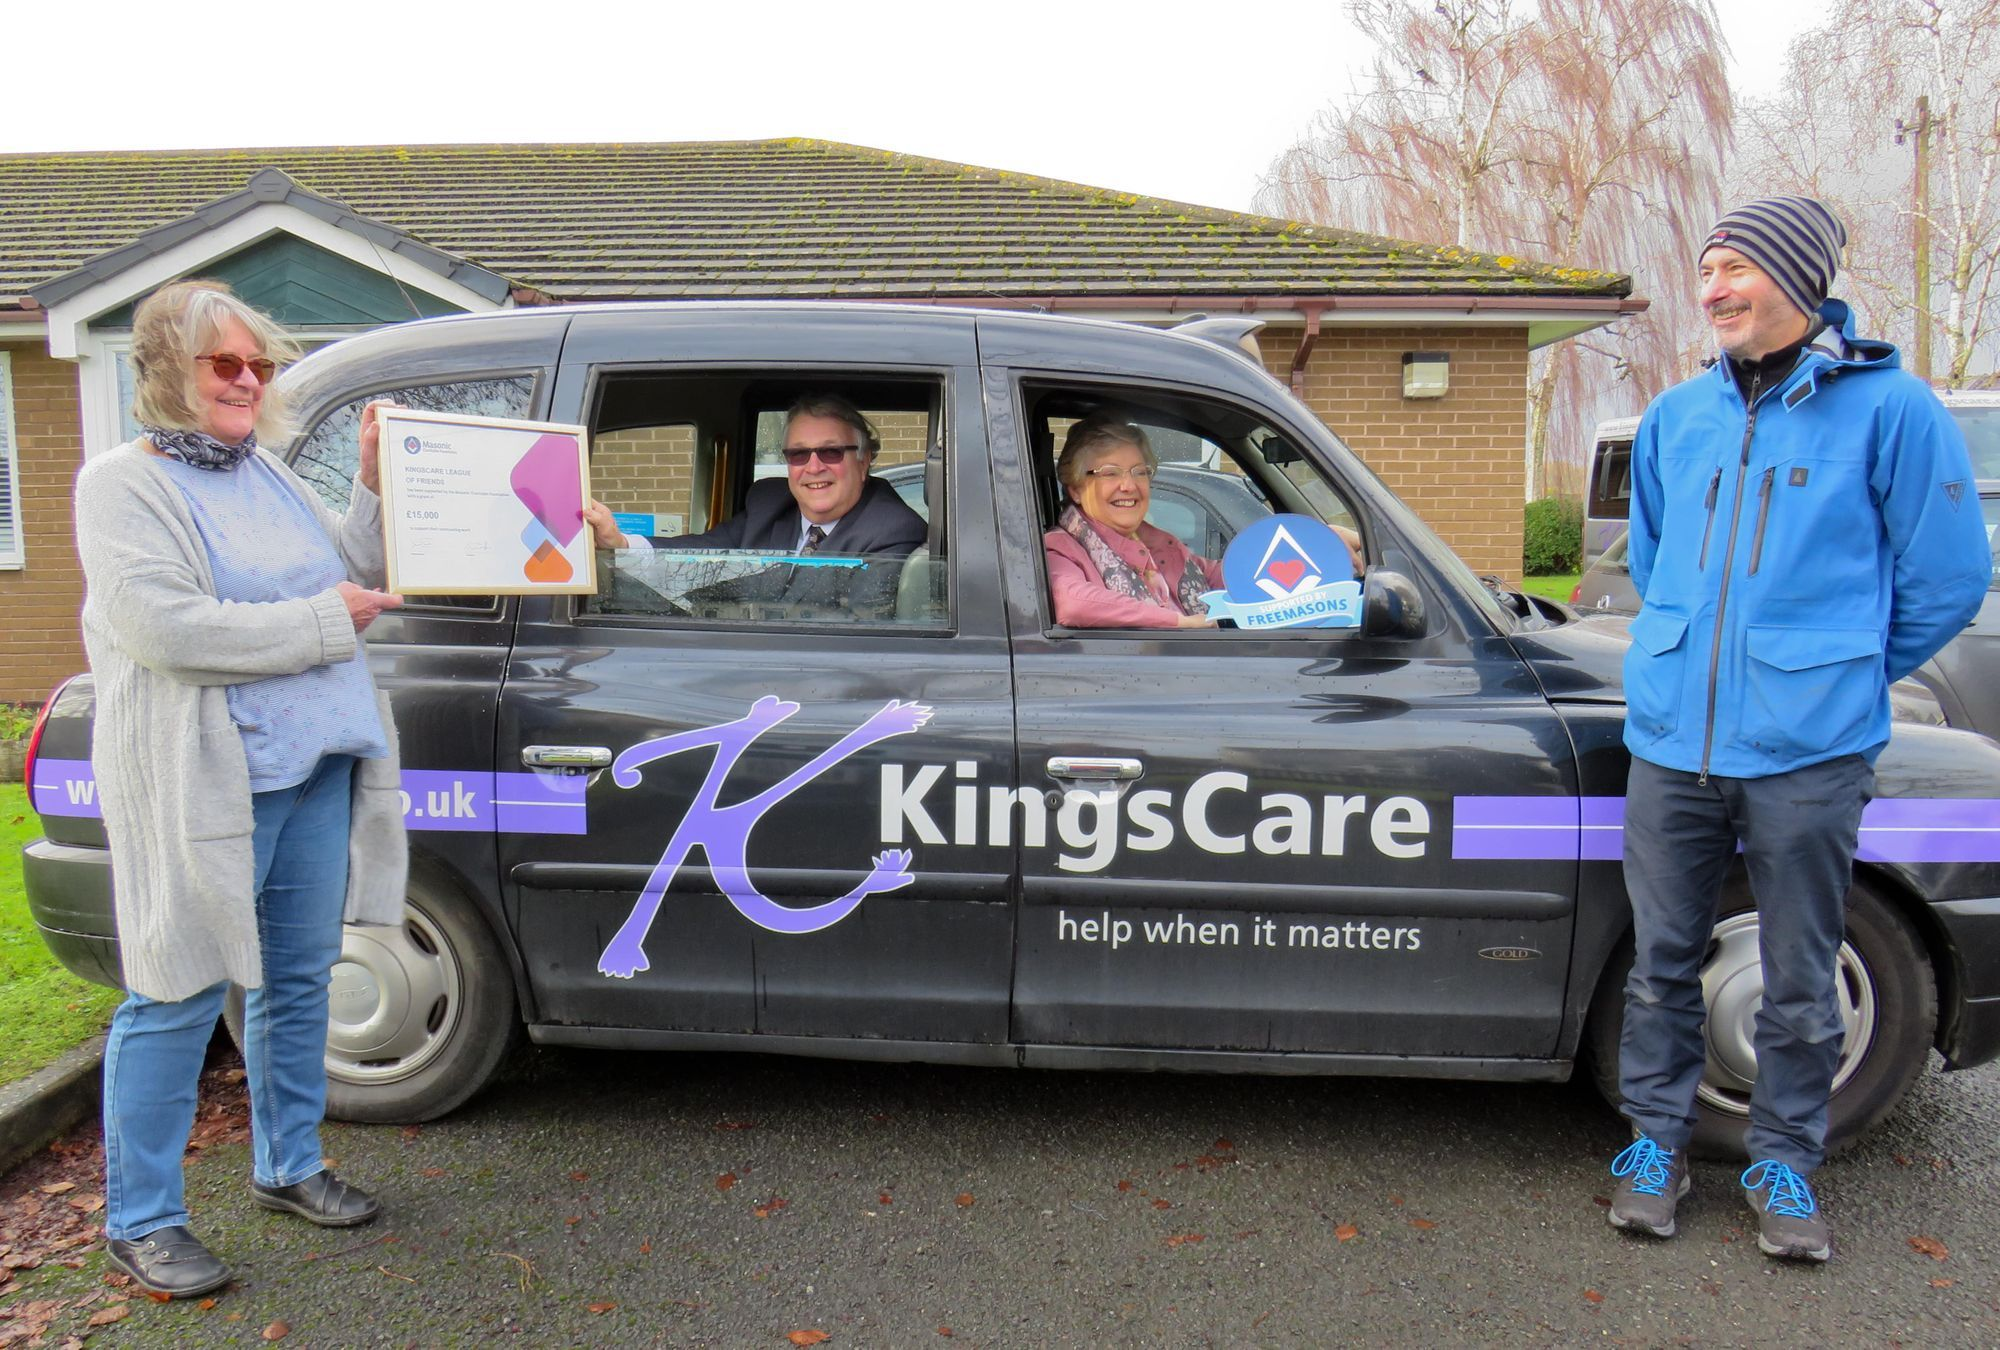 England - Kingsteignton Friends receive a welcome cash boost from Freemasons